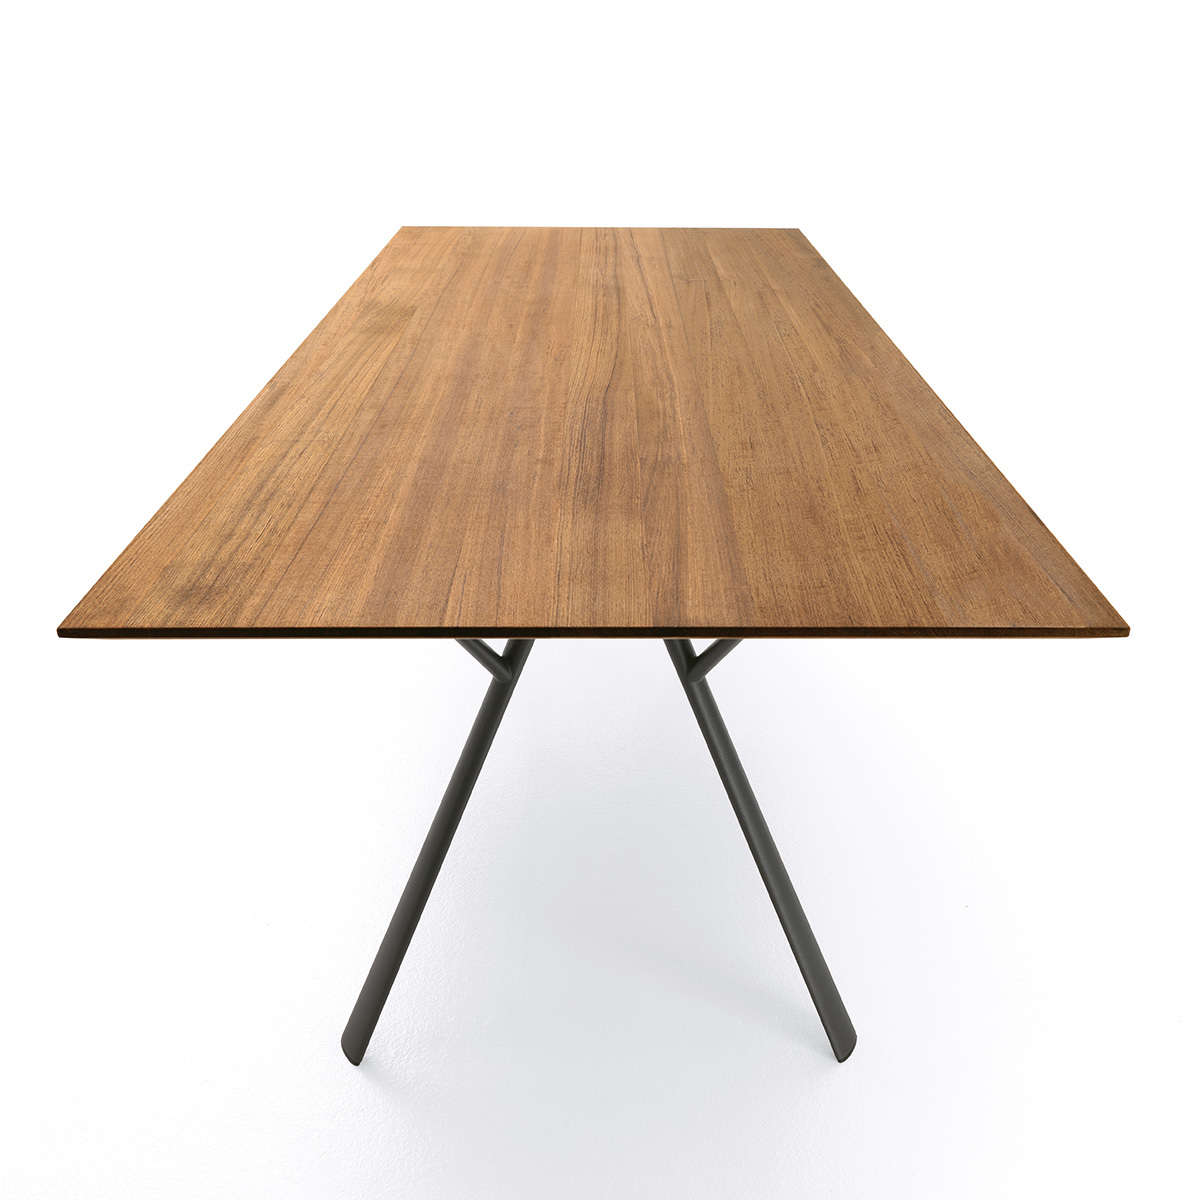 Radice Quadra Table 8